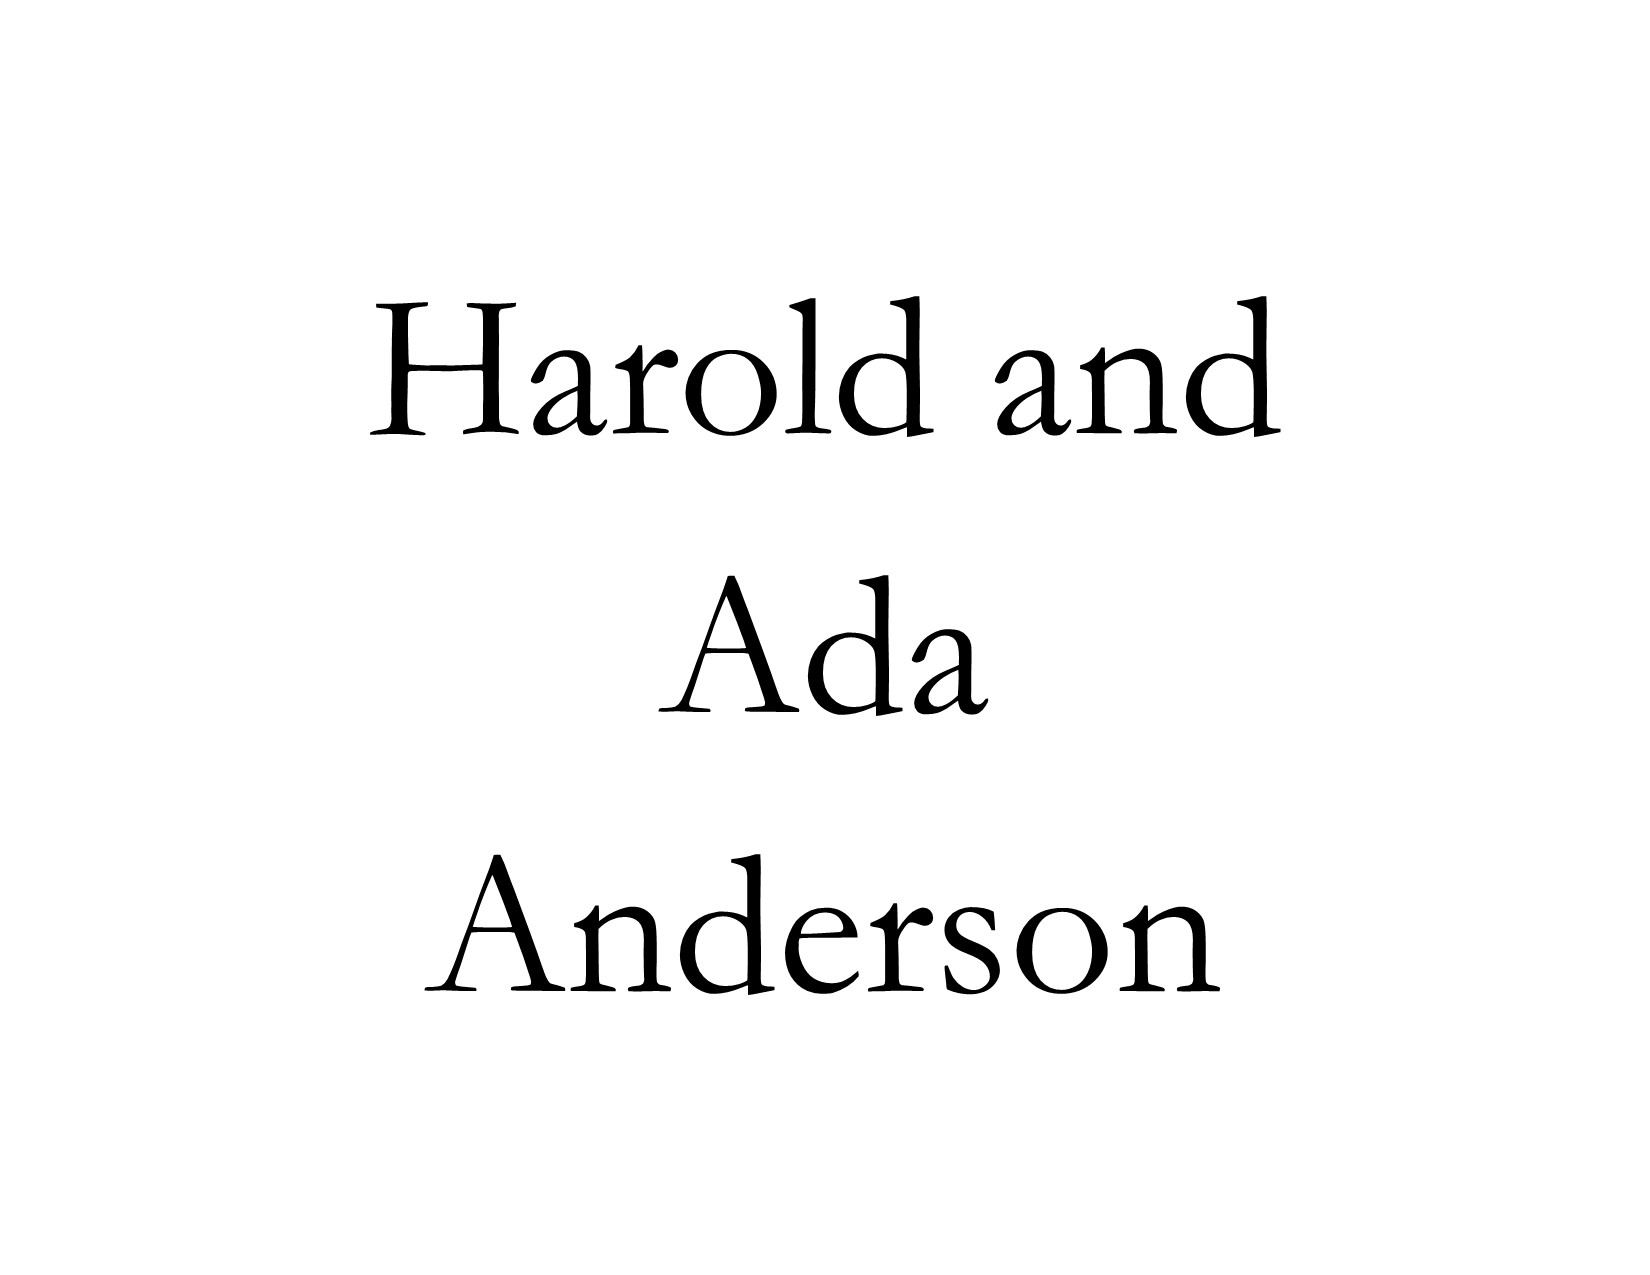 harold and ada anderson